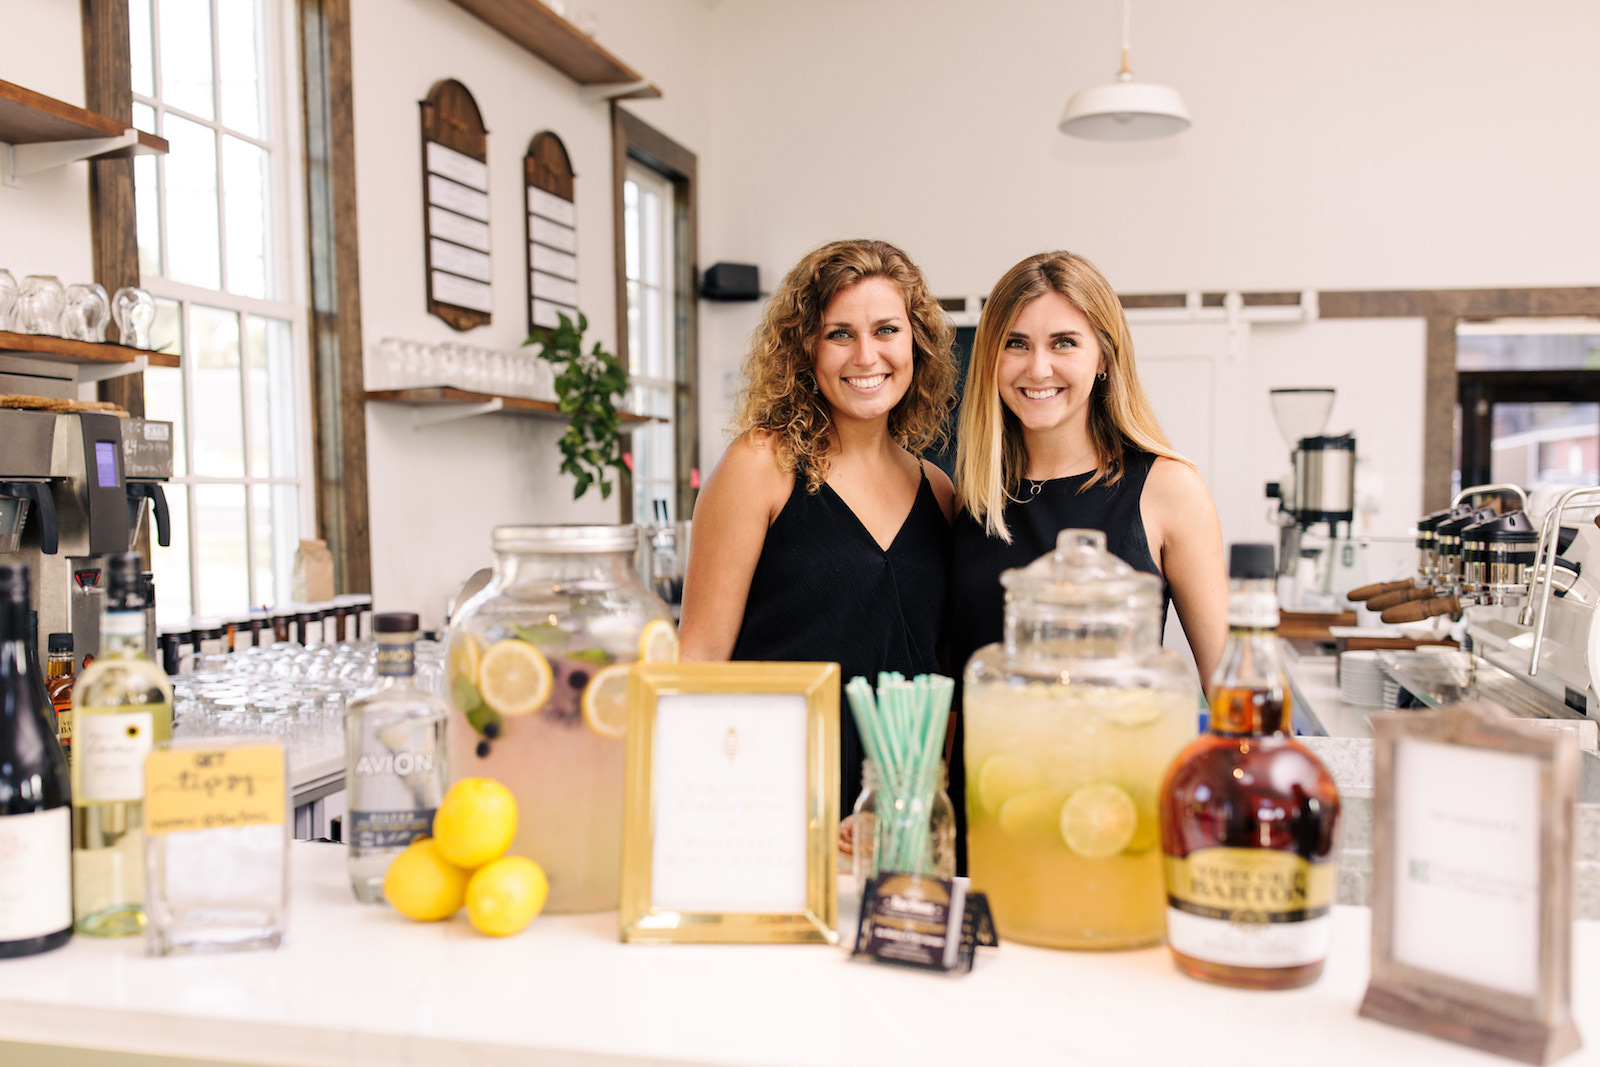 Meet BarBees: Nashville mobile bartending service featured on Nashville Bride Guide